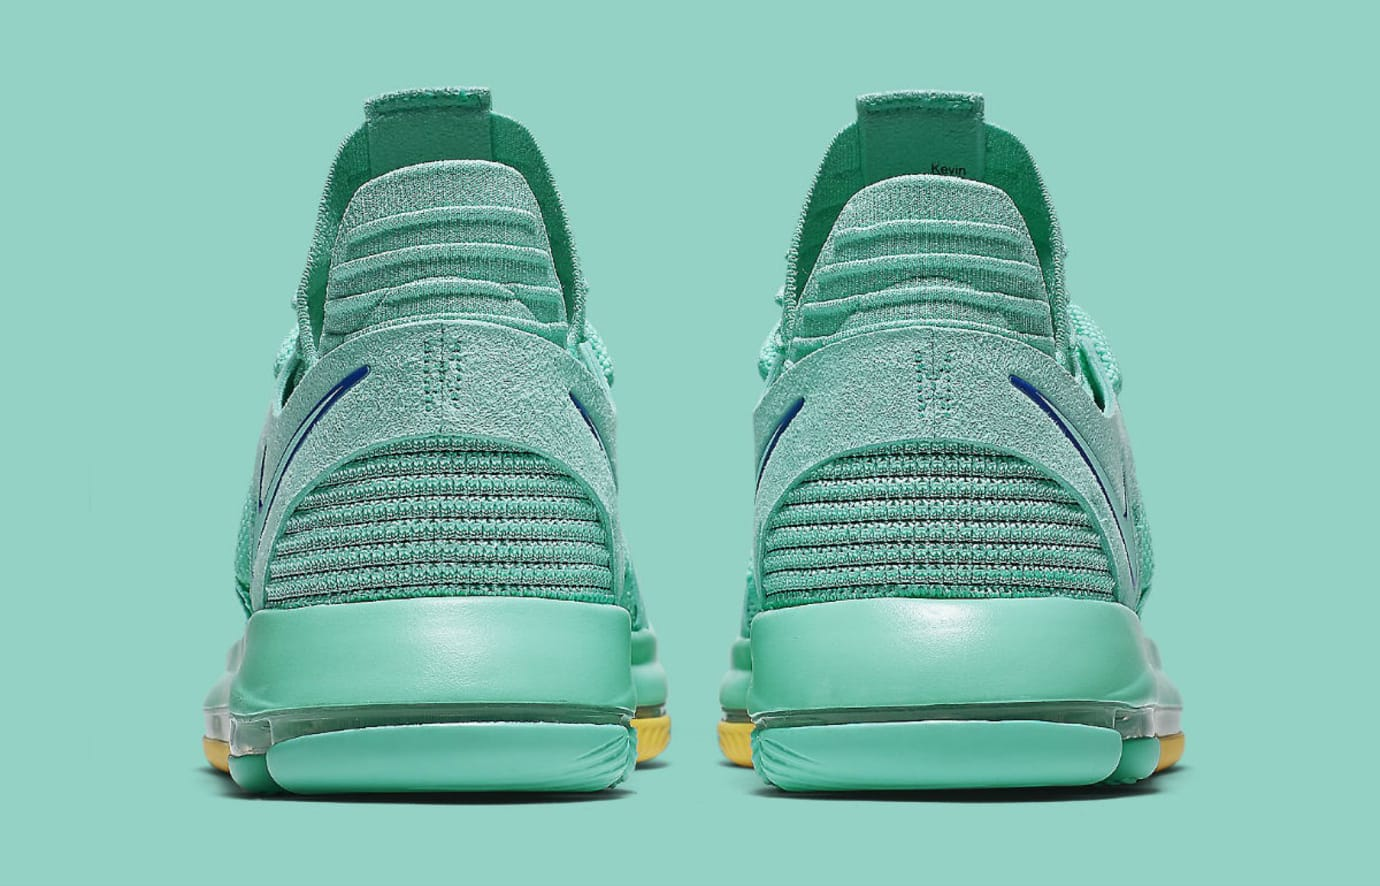 5054c575475 Nike KD 10 X City Edition Hyper Turquoise Racer Blue Release Date  897816-300 Heel